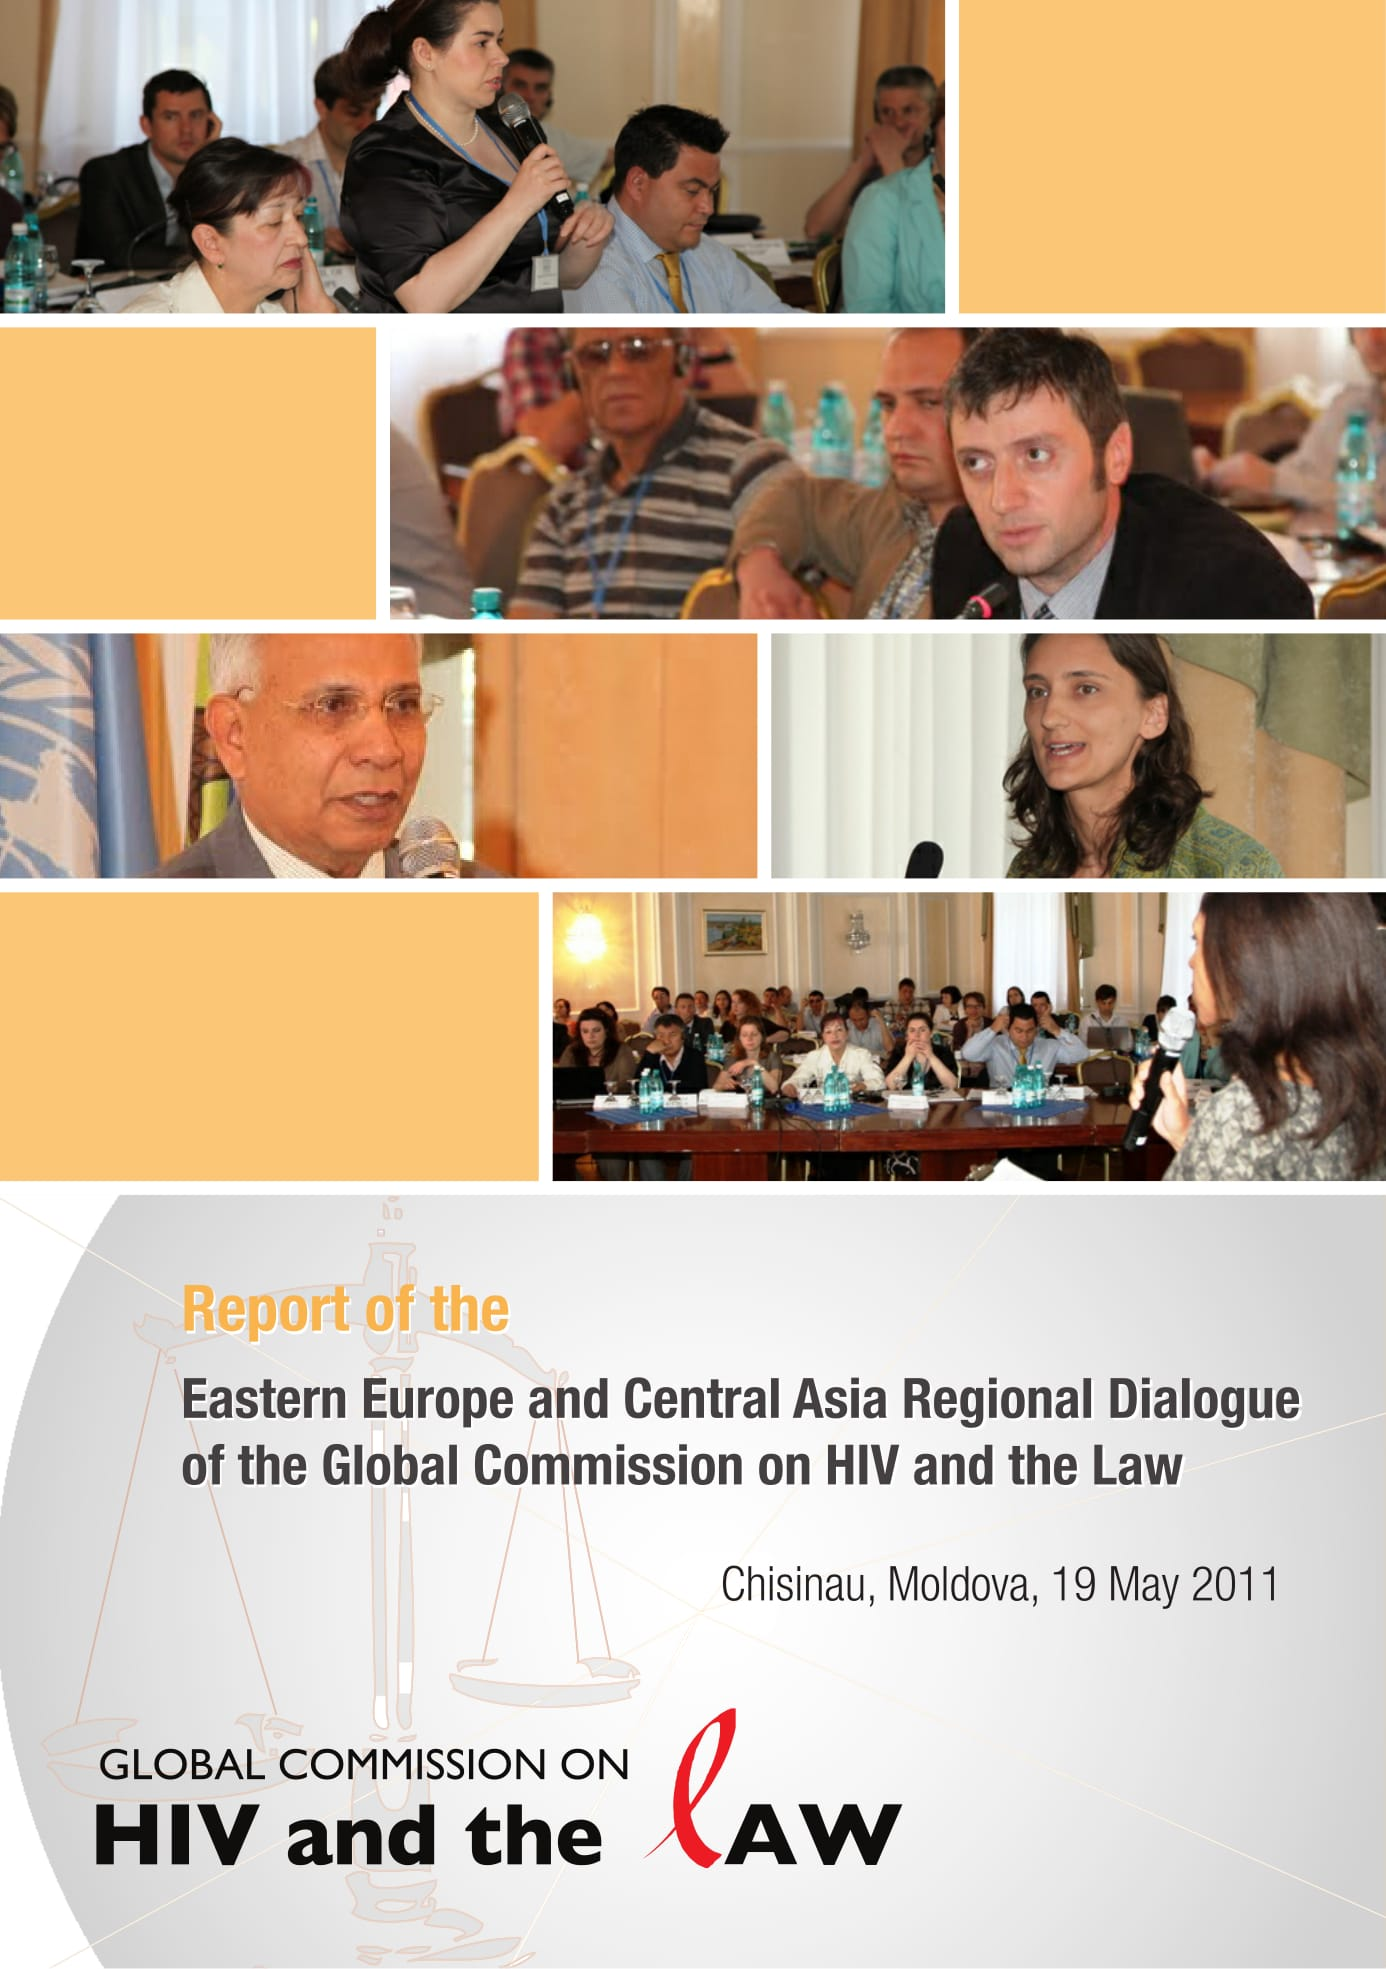 Eastern Europe and Central Asia Regional Dialogue Report